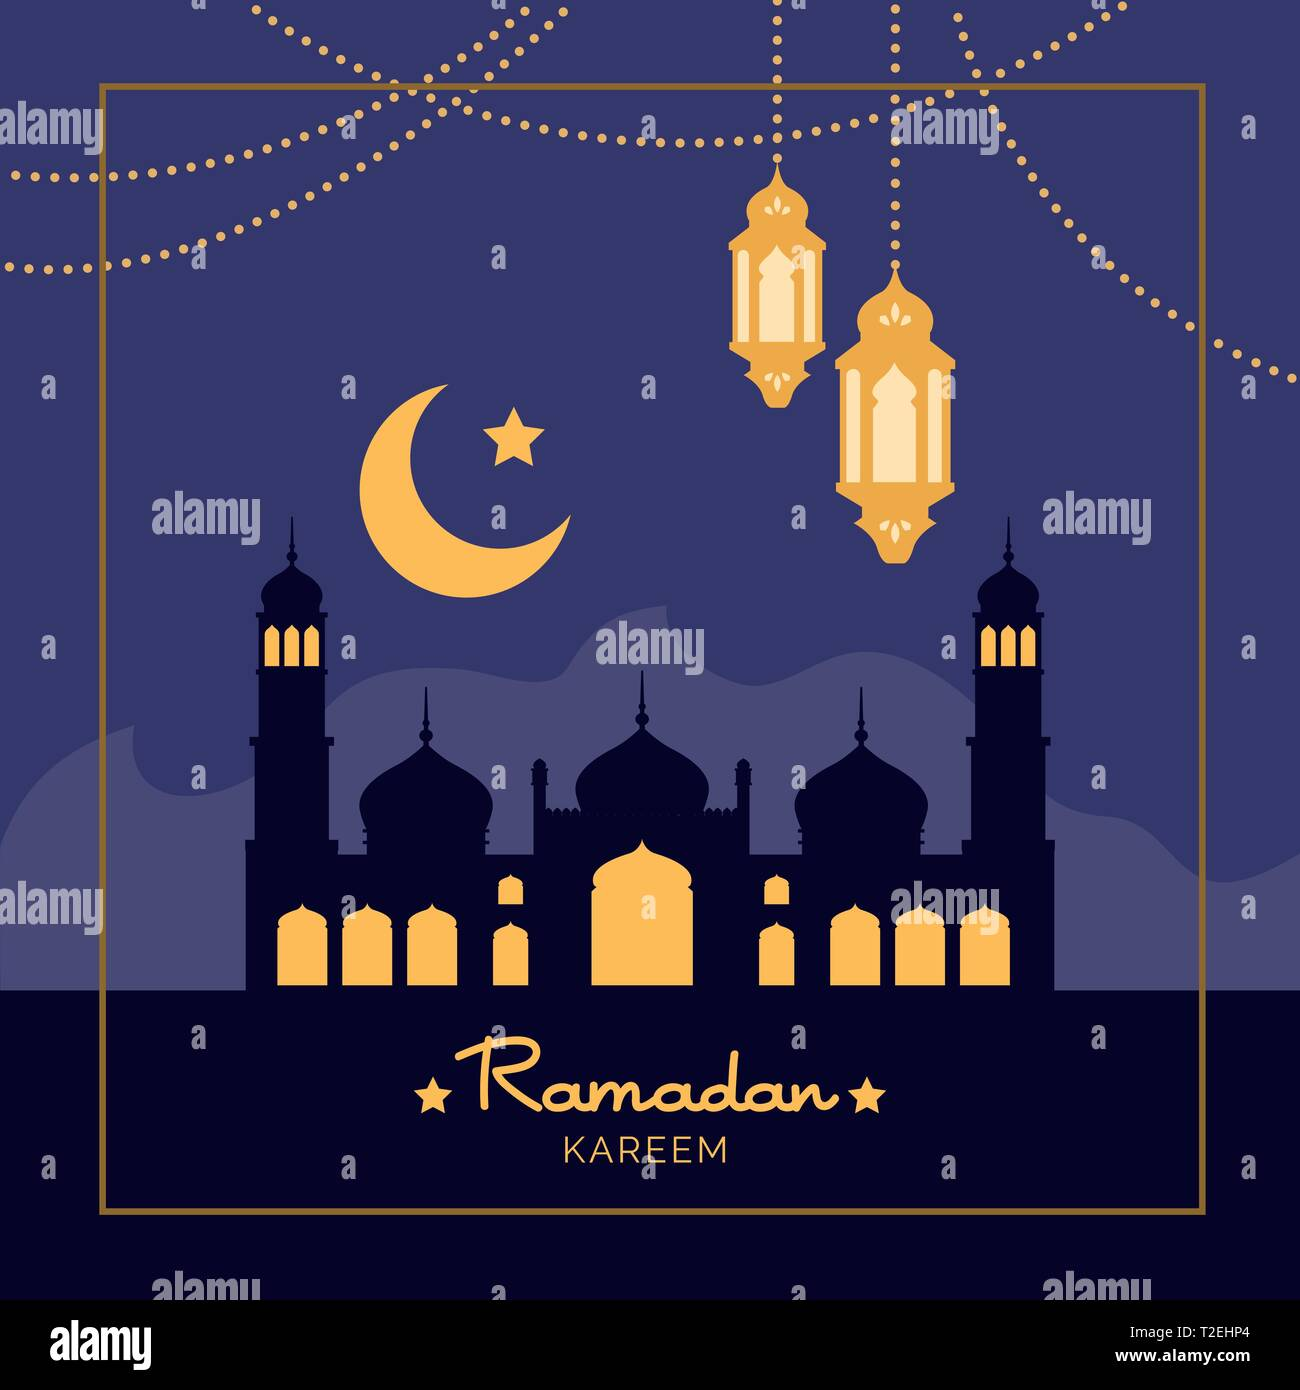 Ramadan Kareem holiday celebration card with mosque, lantern and